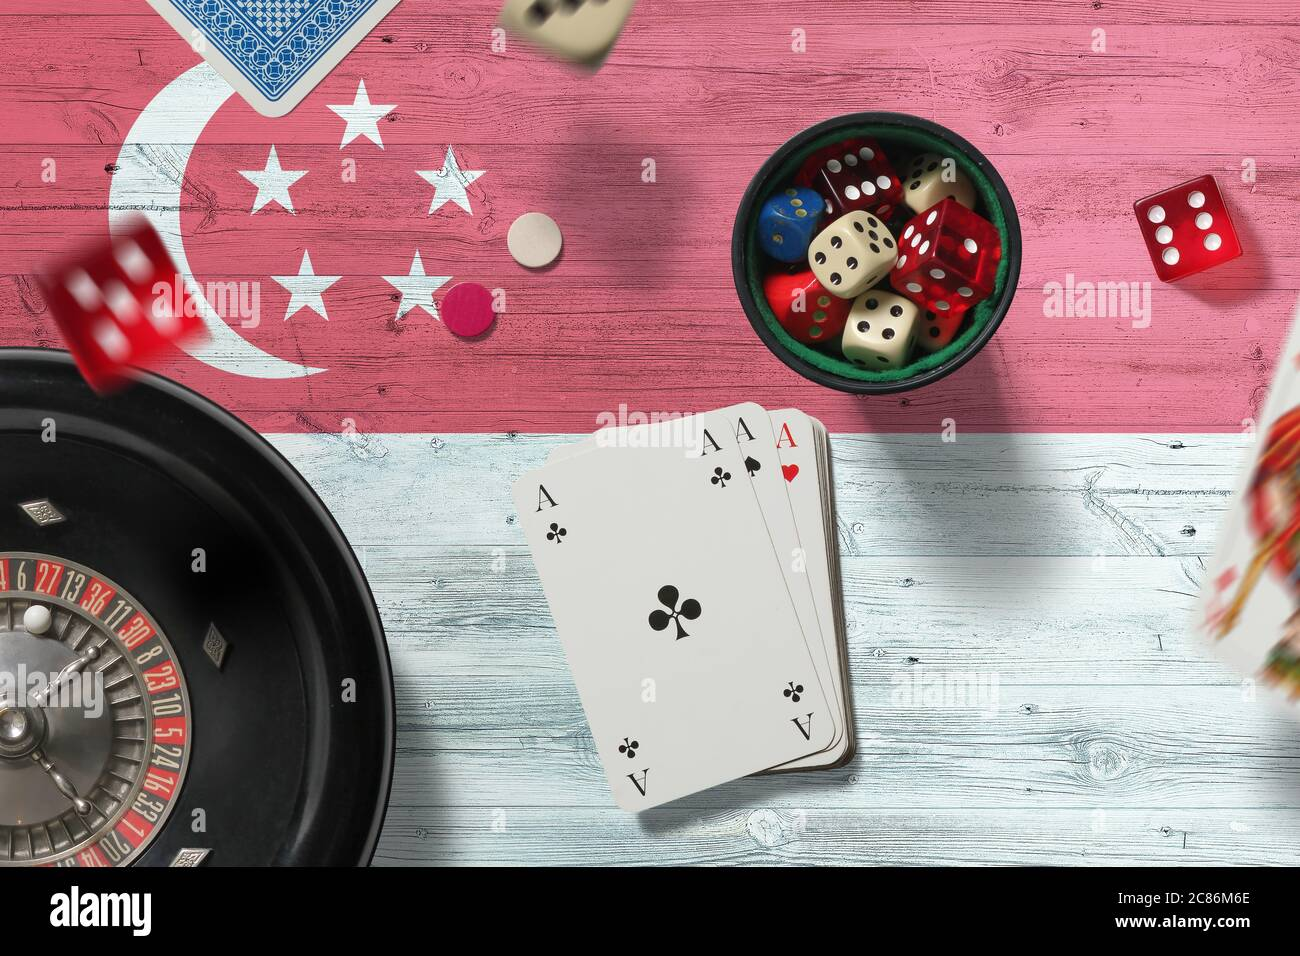 Singapore Casino High Resolution Stock Photography And Images Alamy